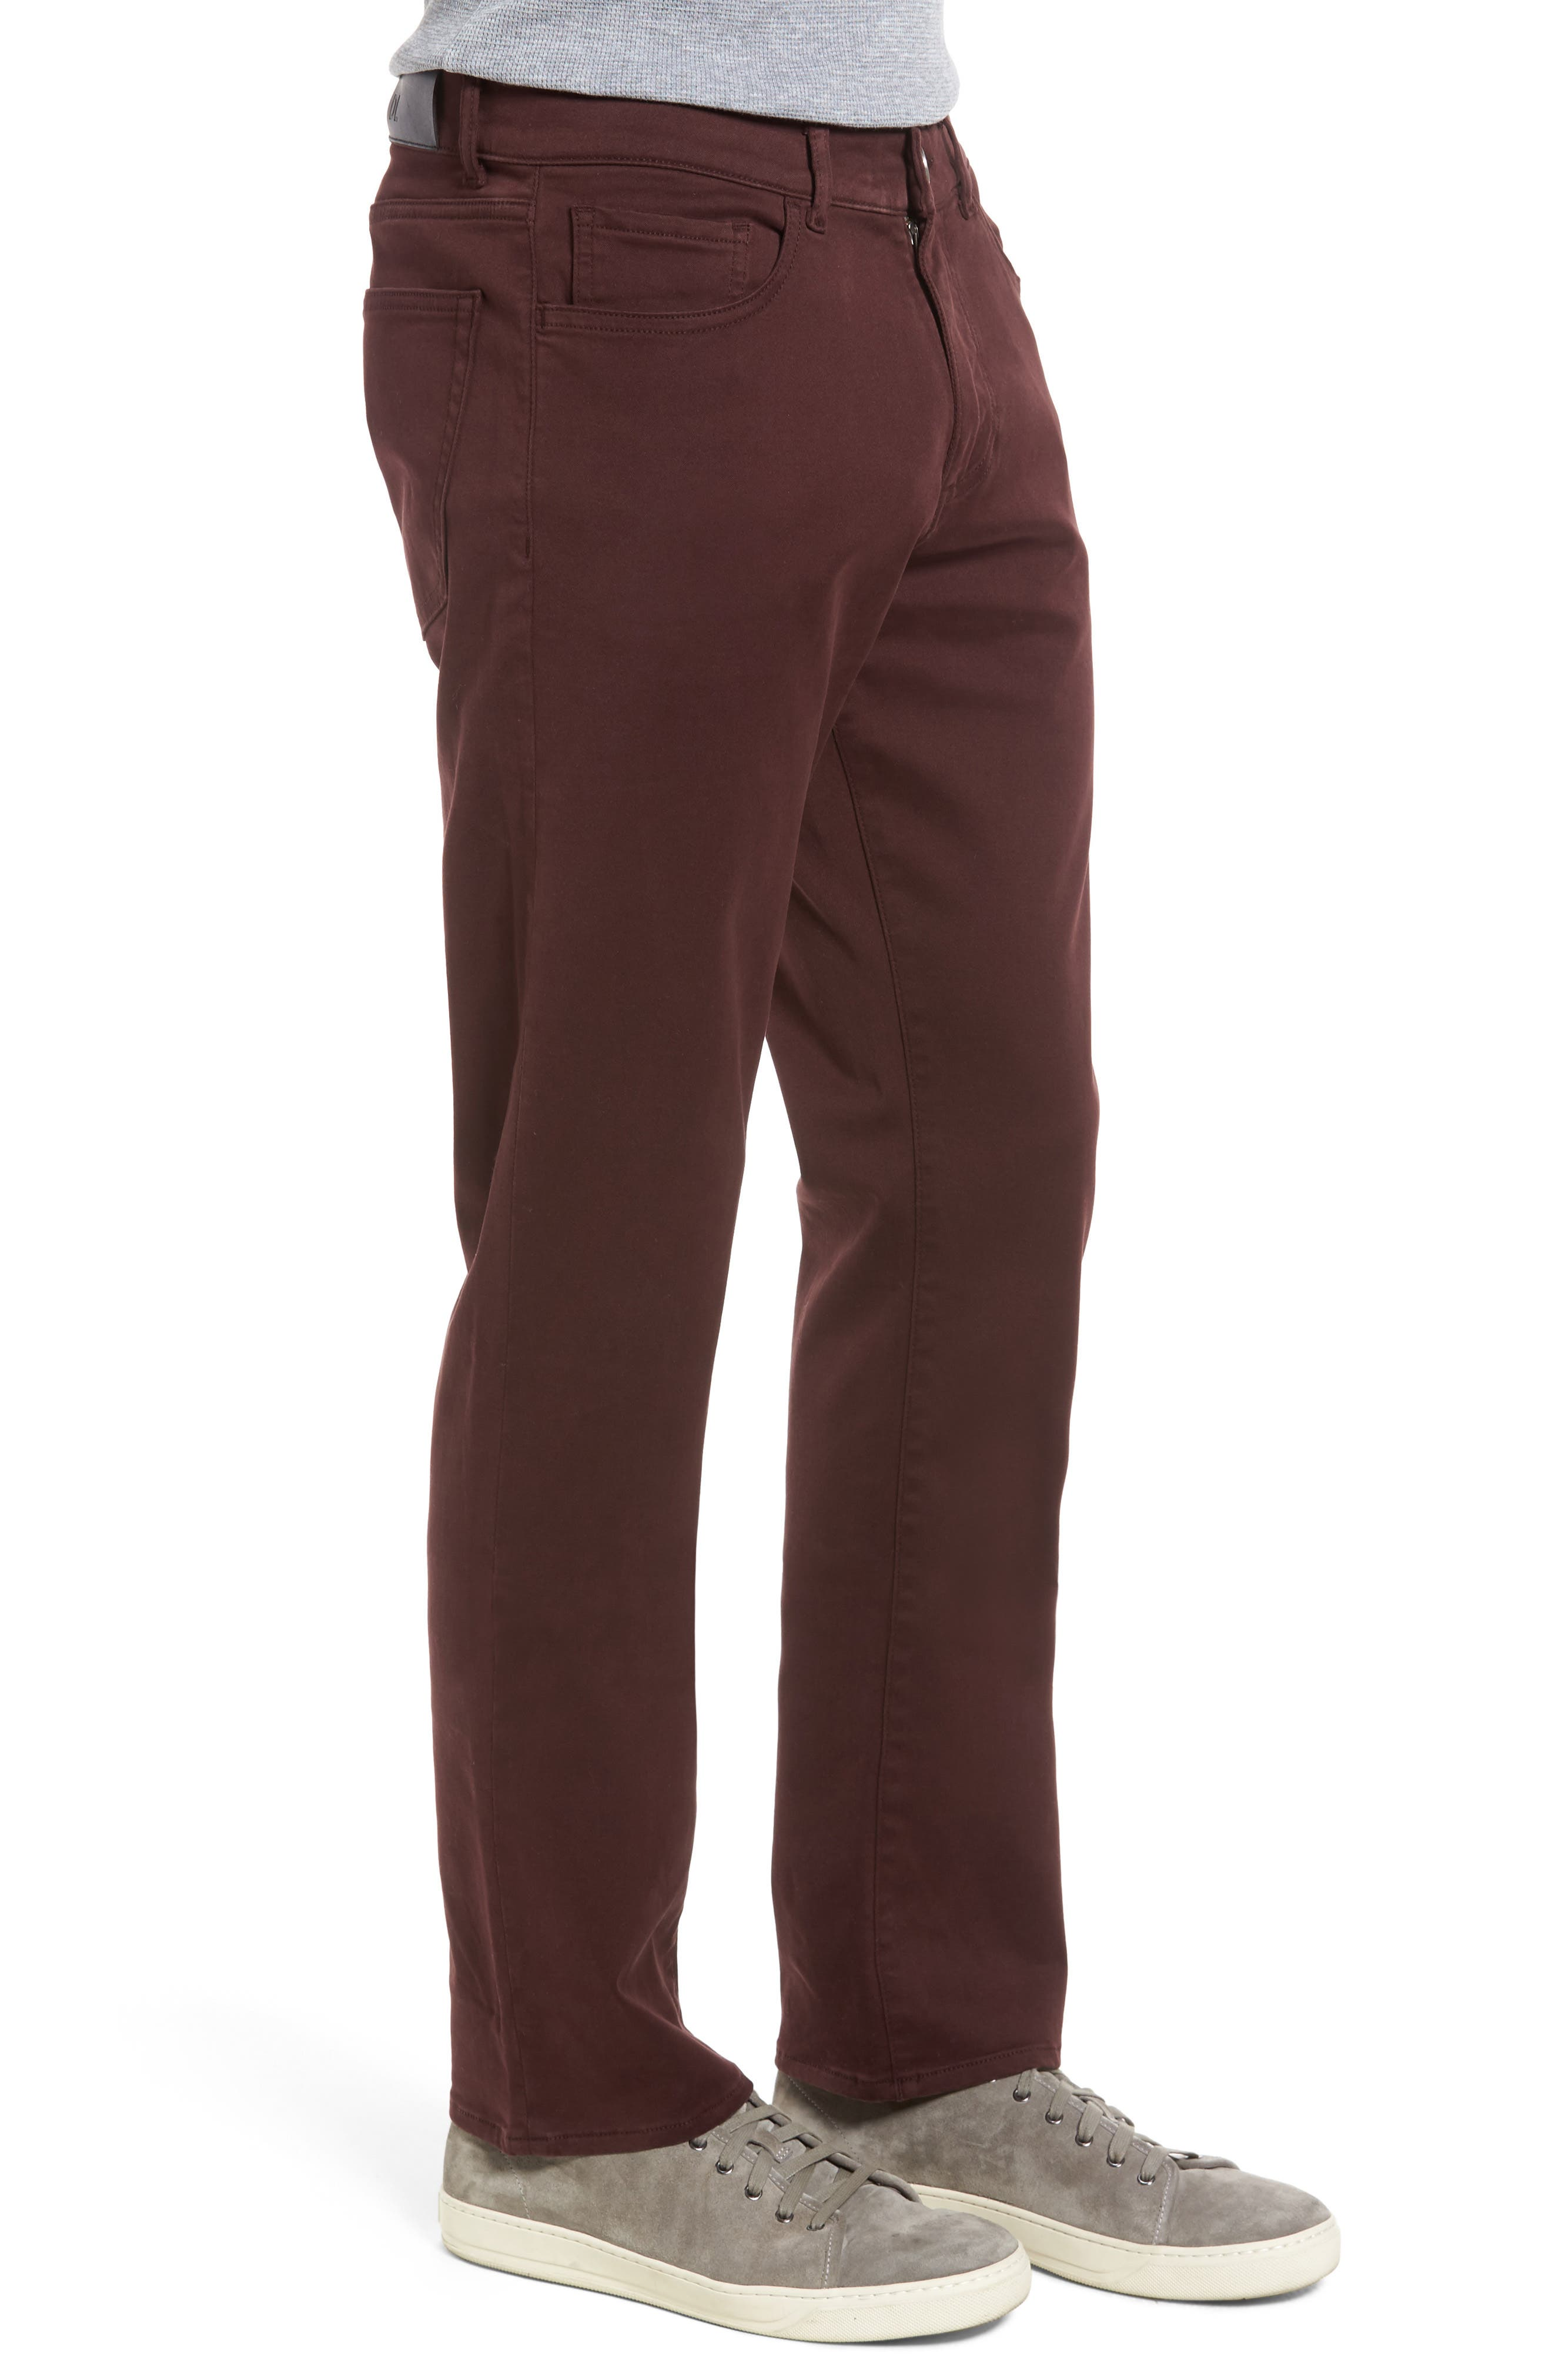 Russell Slim Fit Sateen Twill Pants,                             Alternate thumbnail 32, color,